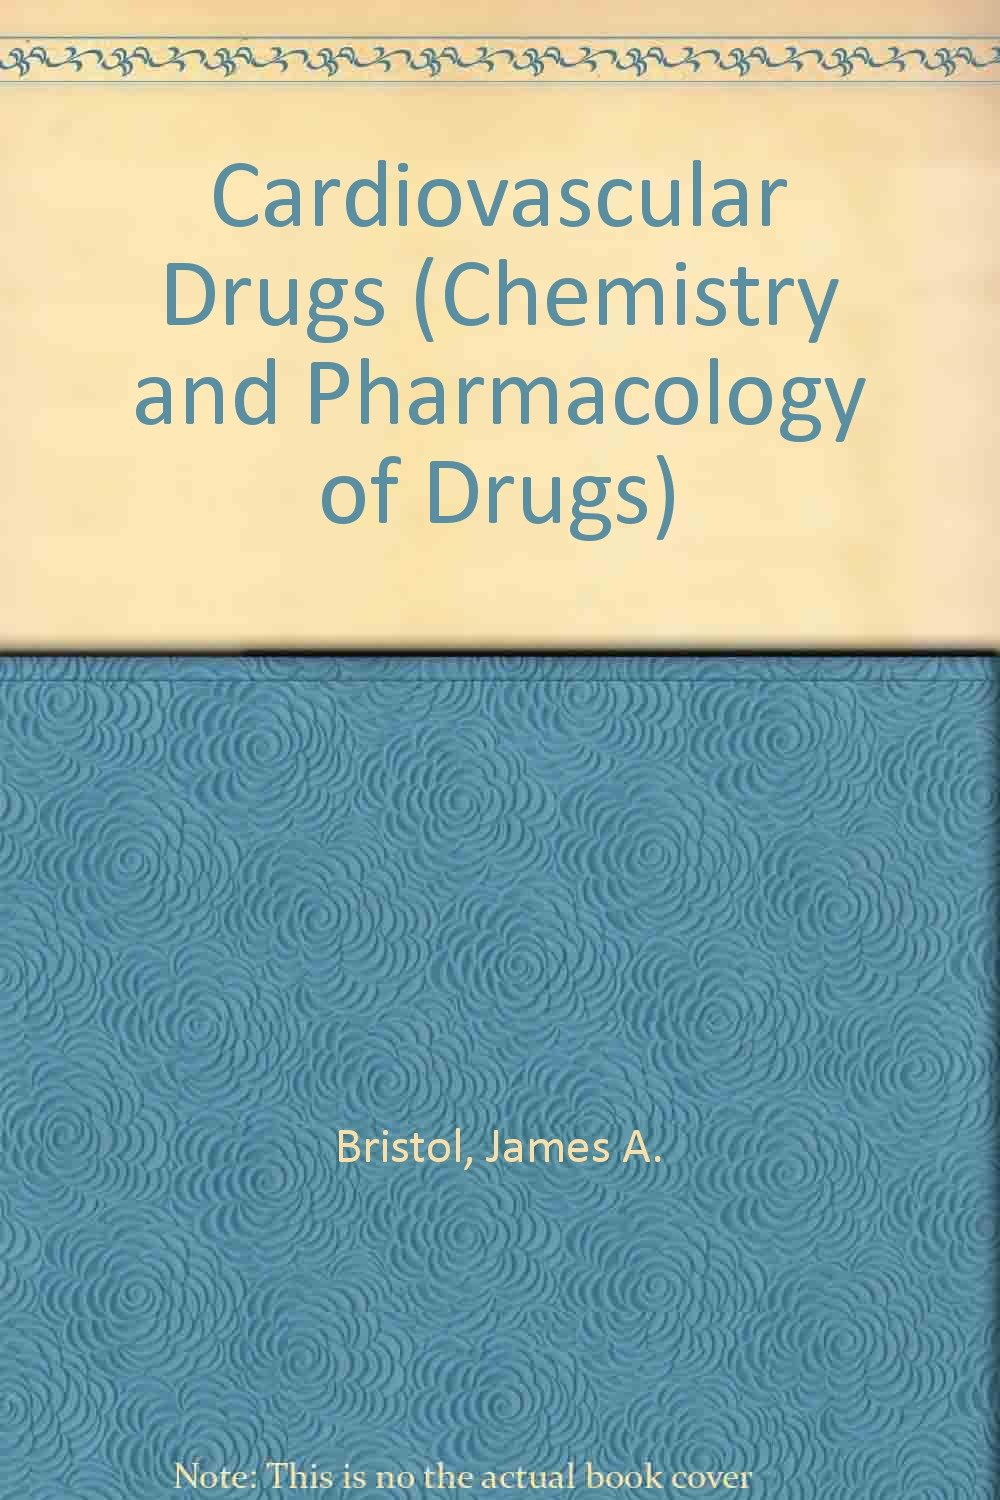 Cardiovascular Drugs (Chemistry and Pharmacology of Drugs)